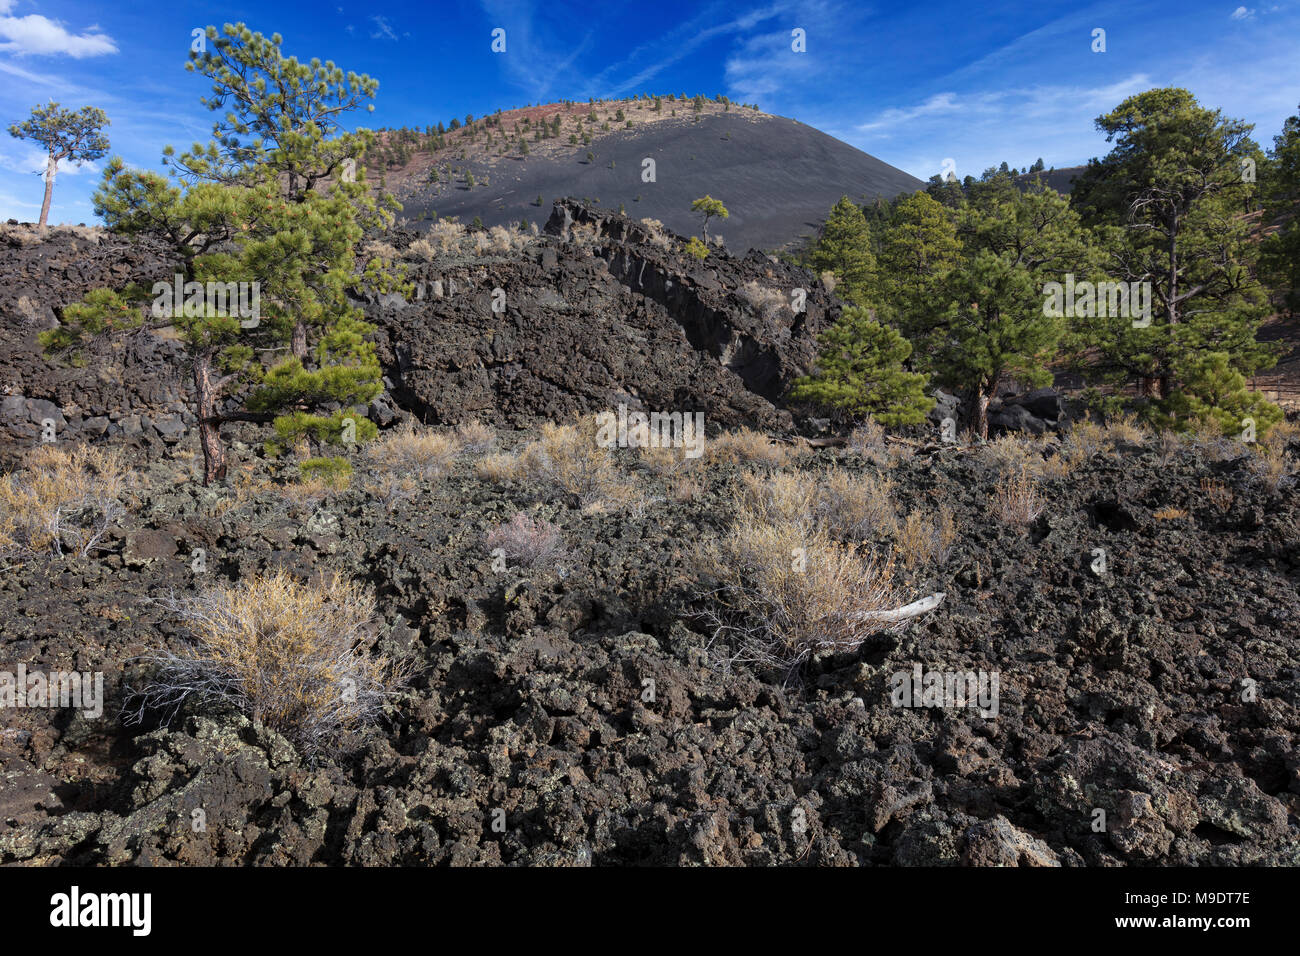 Ancient Lava AA Flow, Sunset Crater National Monument, Arizona - Stock Image